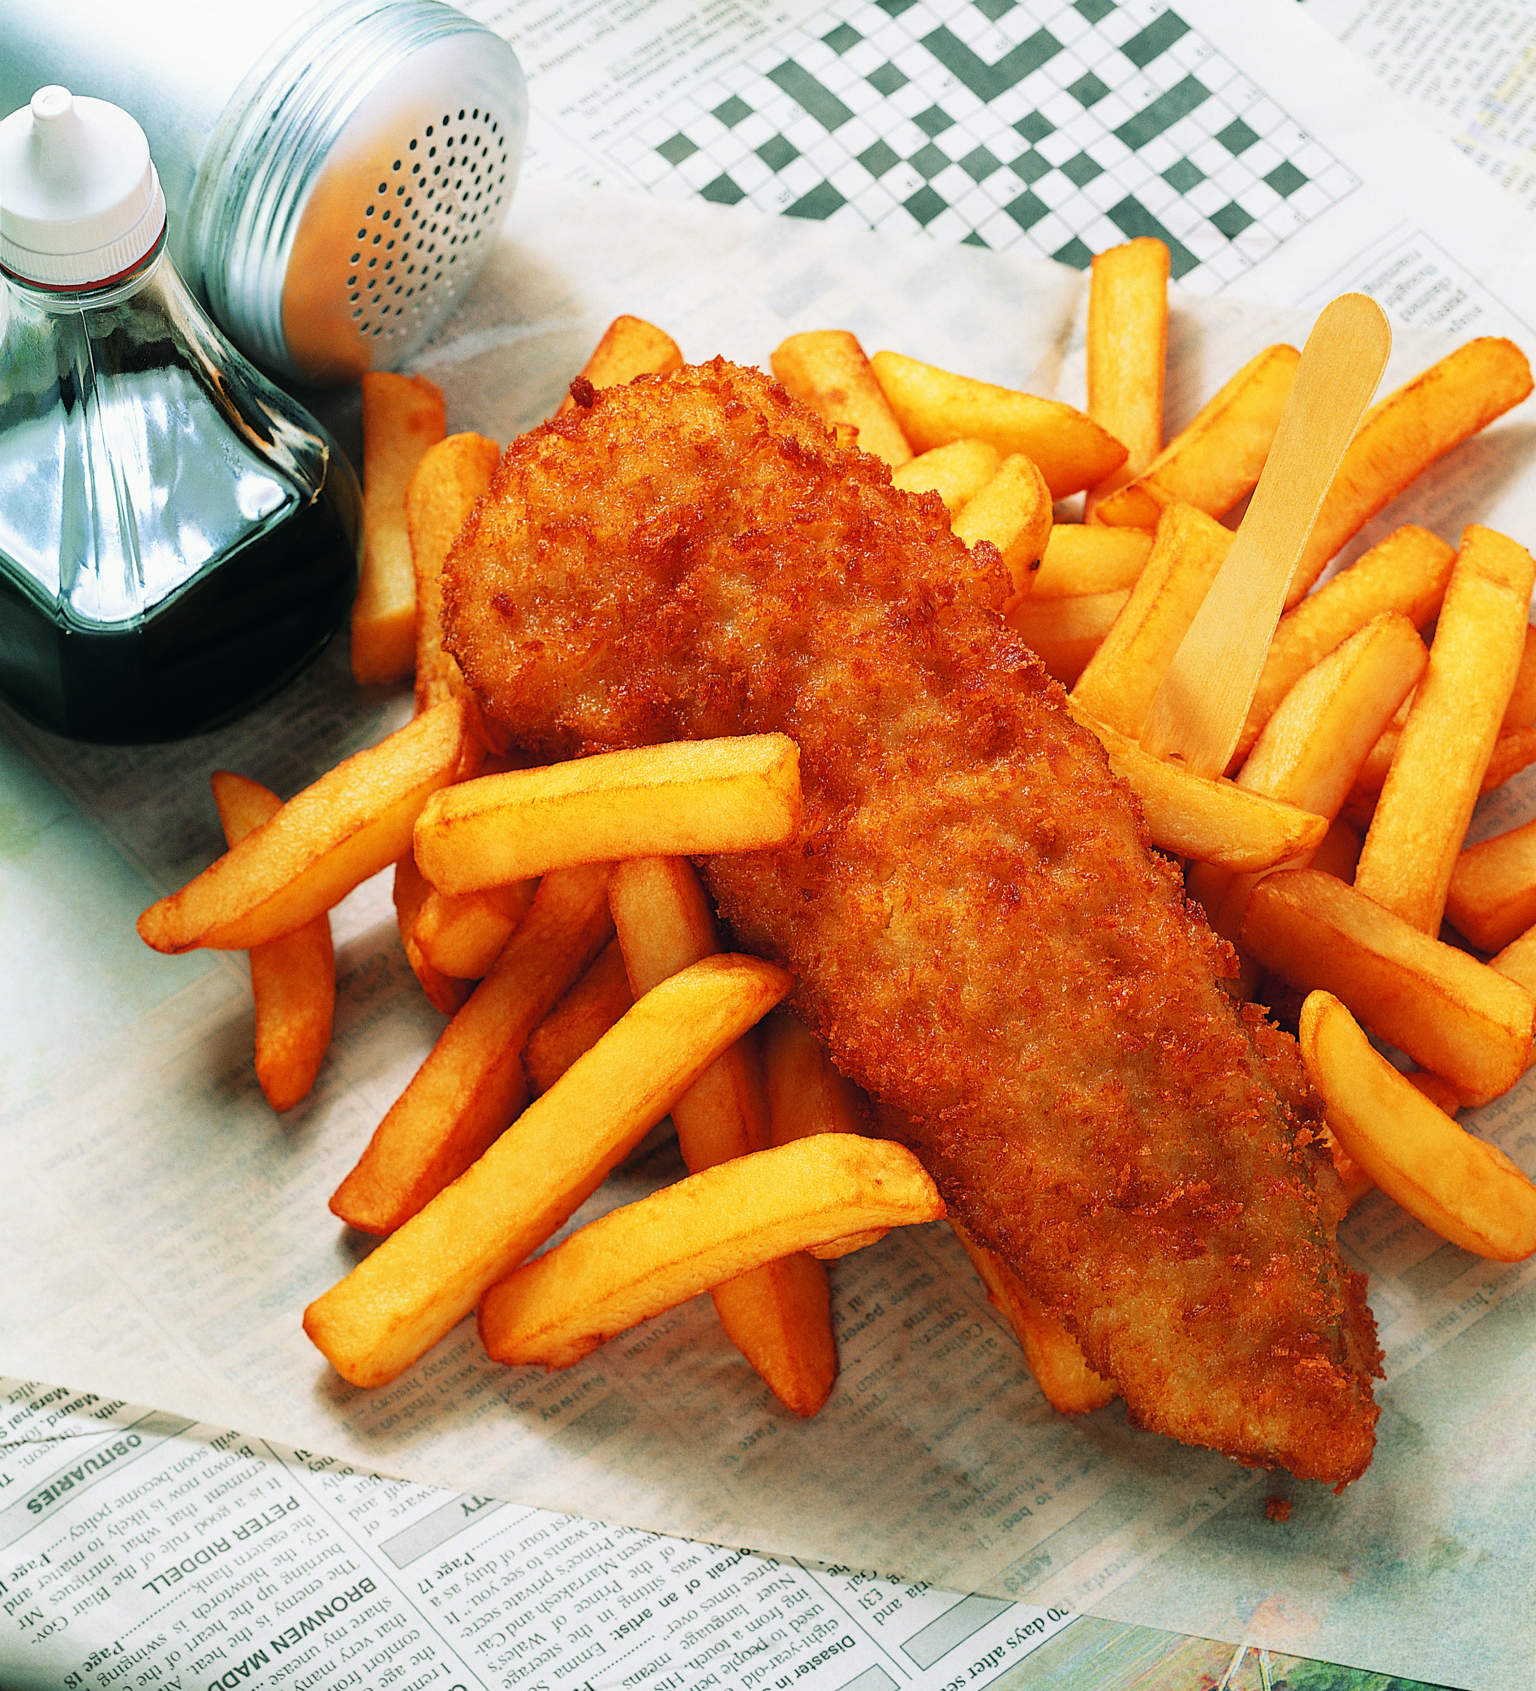 10 Best Fish & Chips In Los Angeles - Los Angeles ...